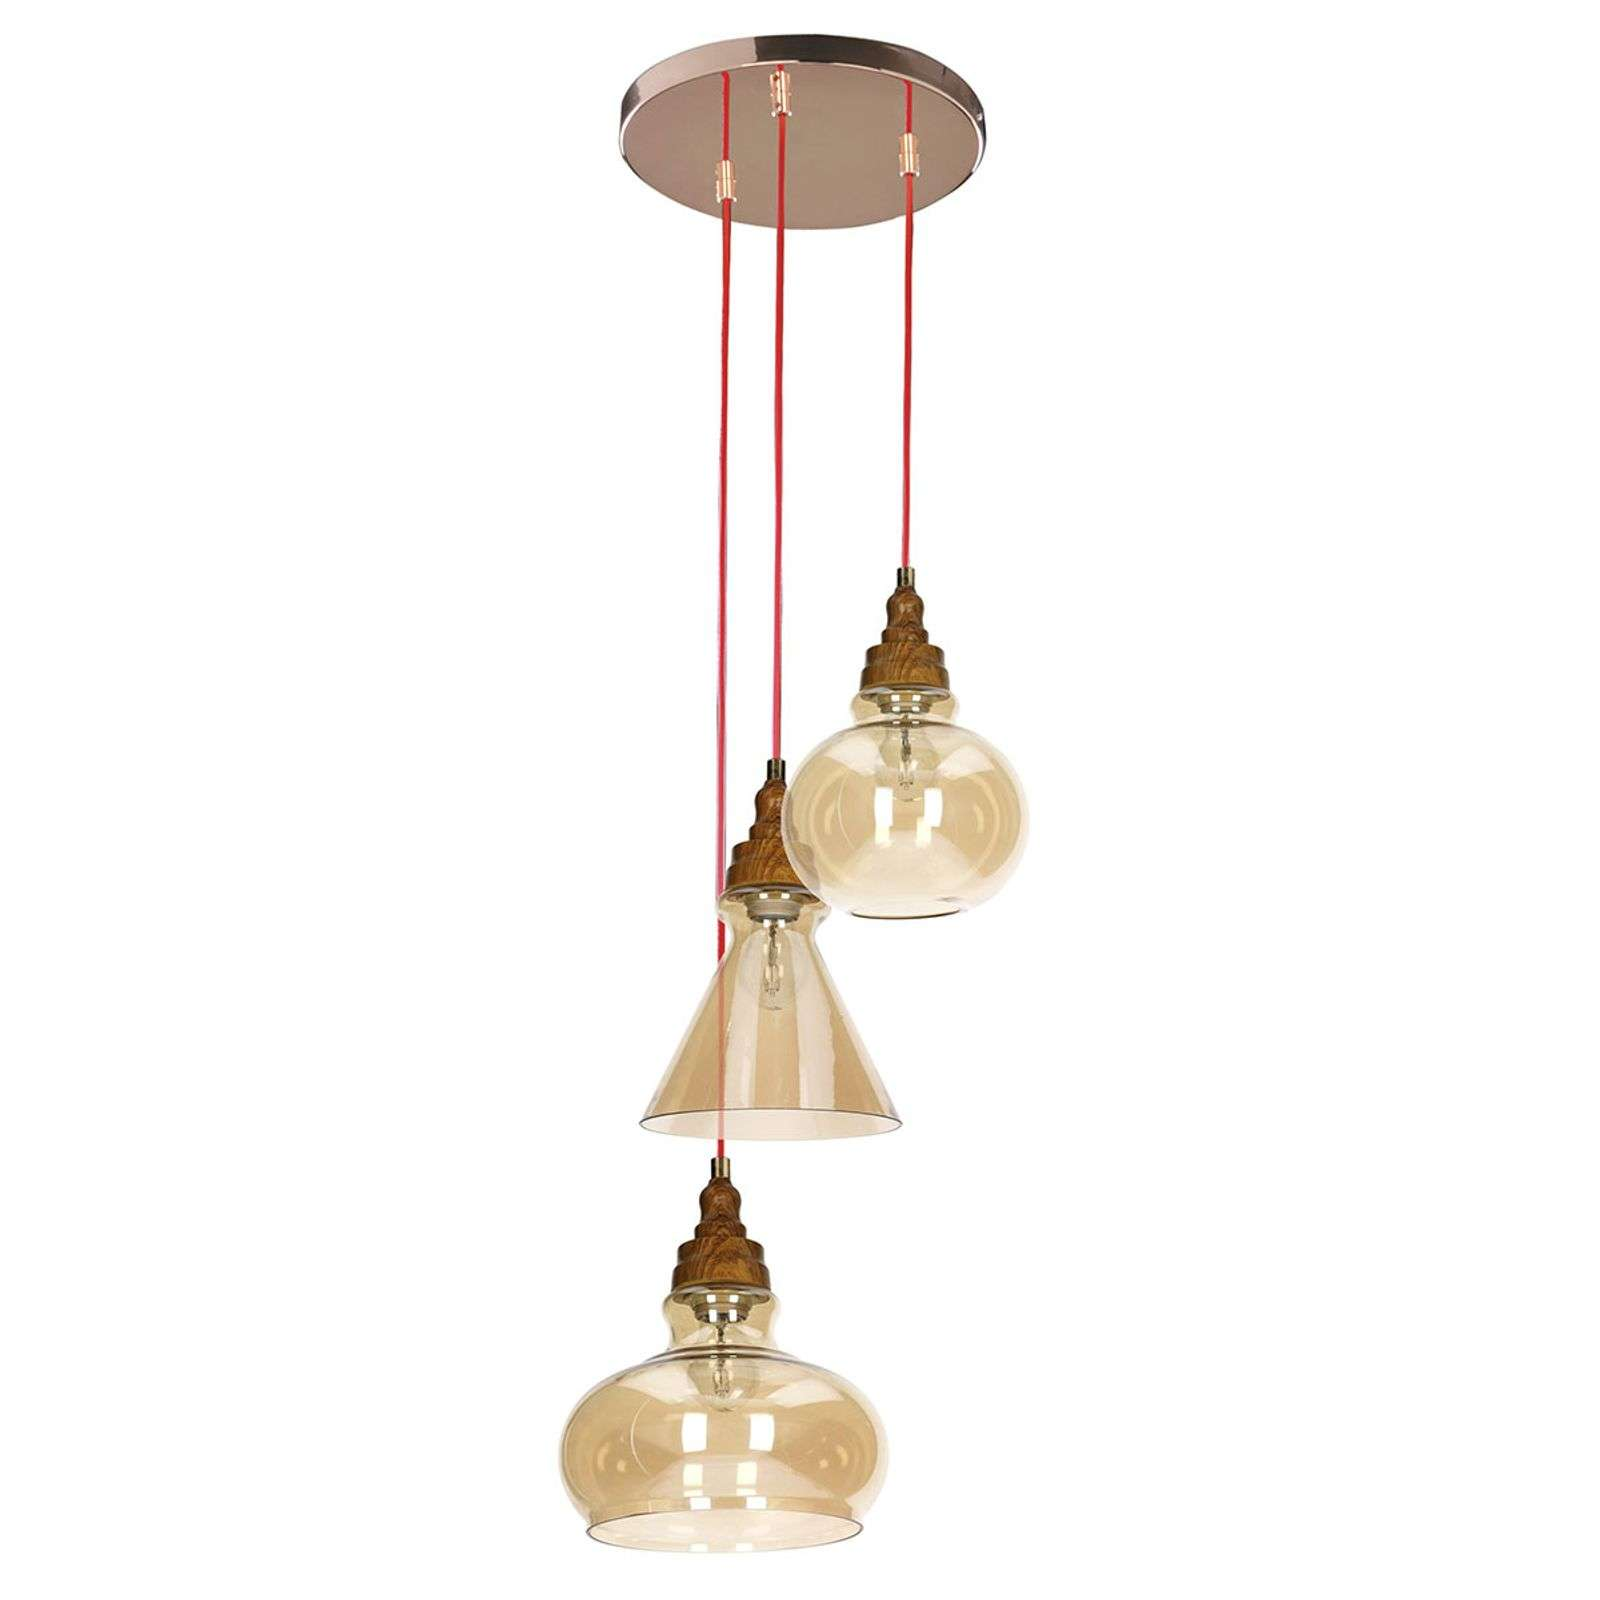 Remarquable suspension Universe, 3 lampes